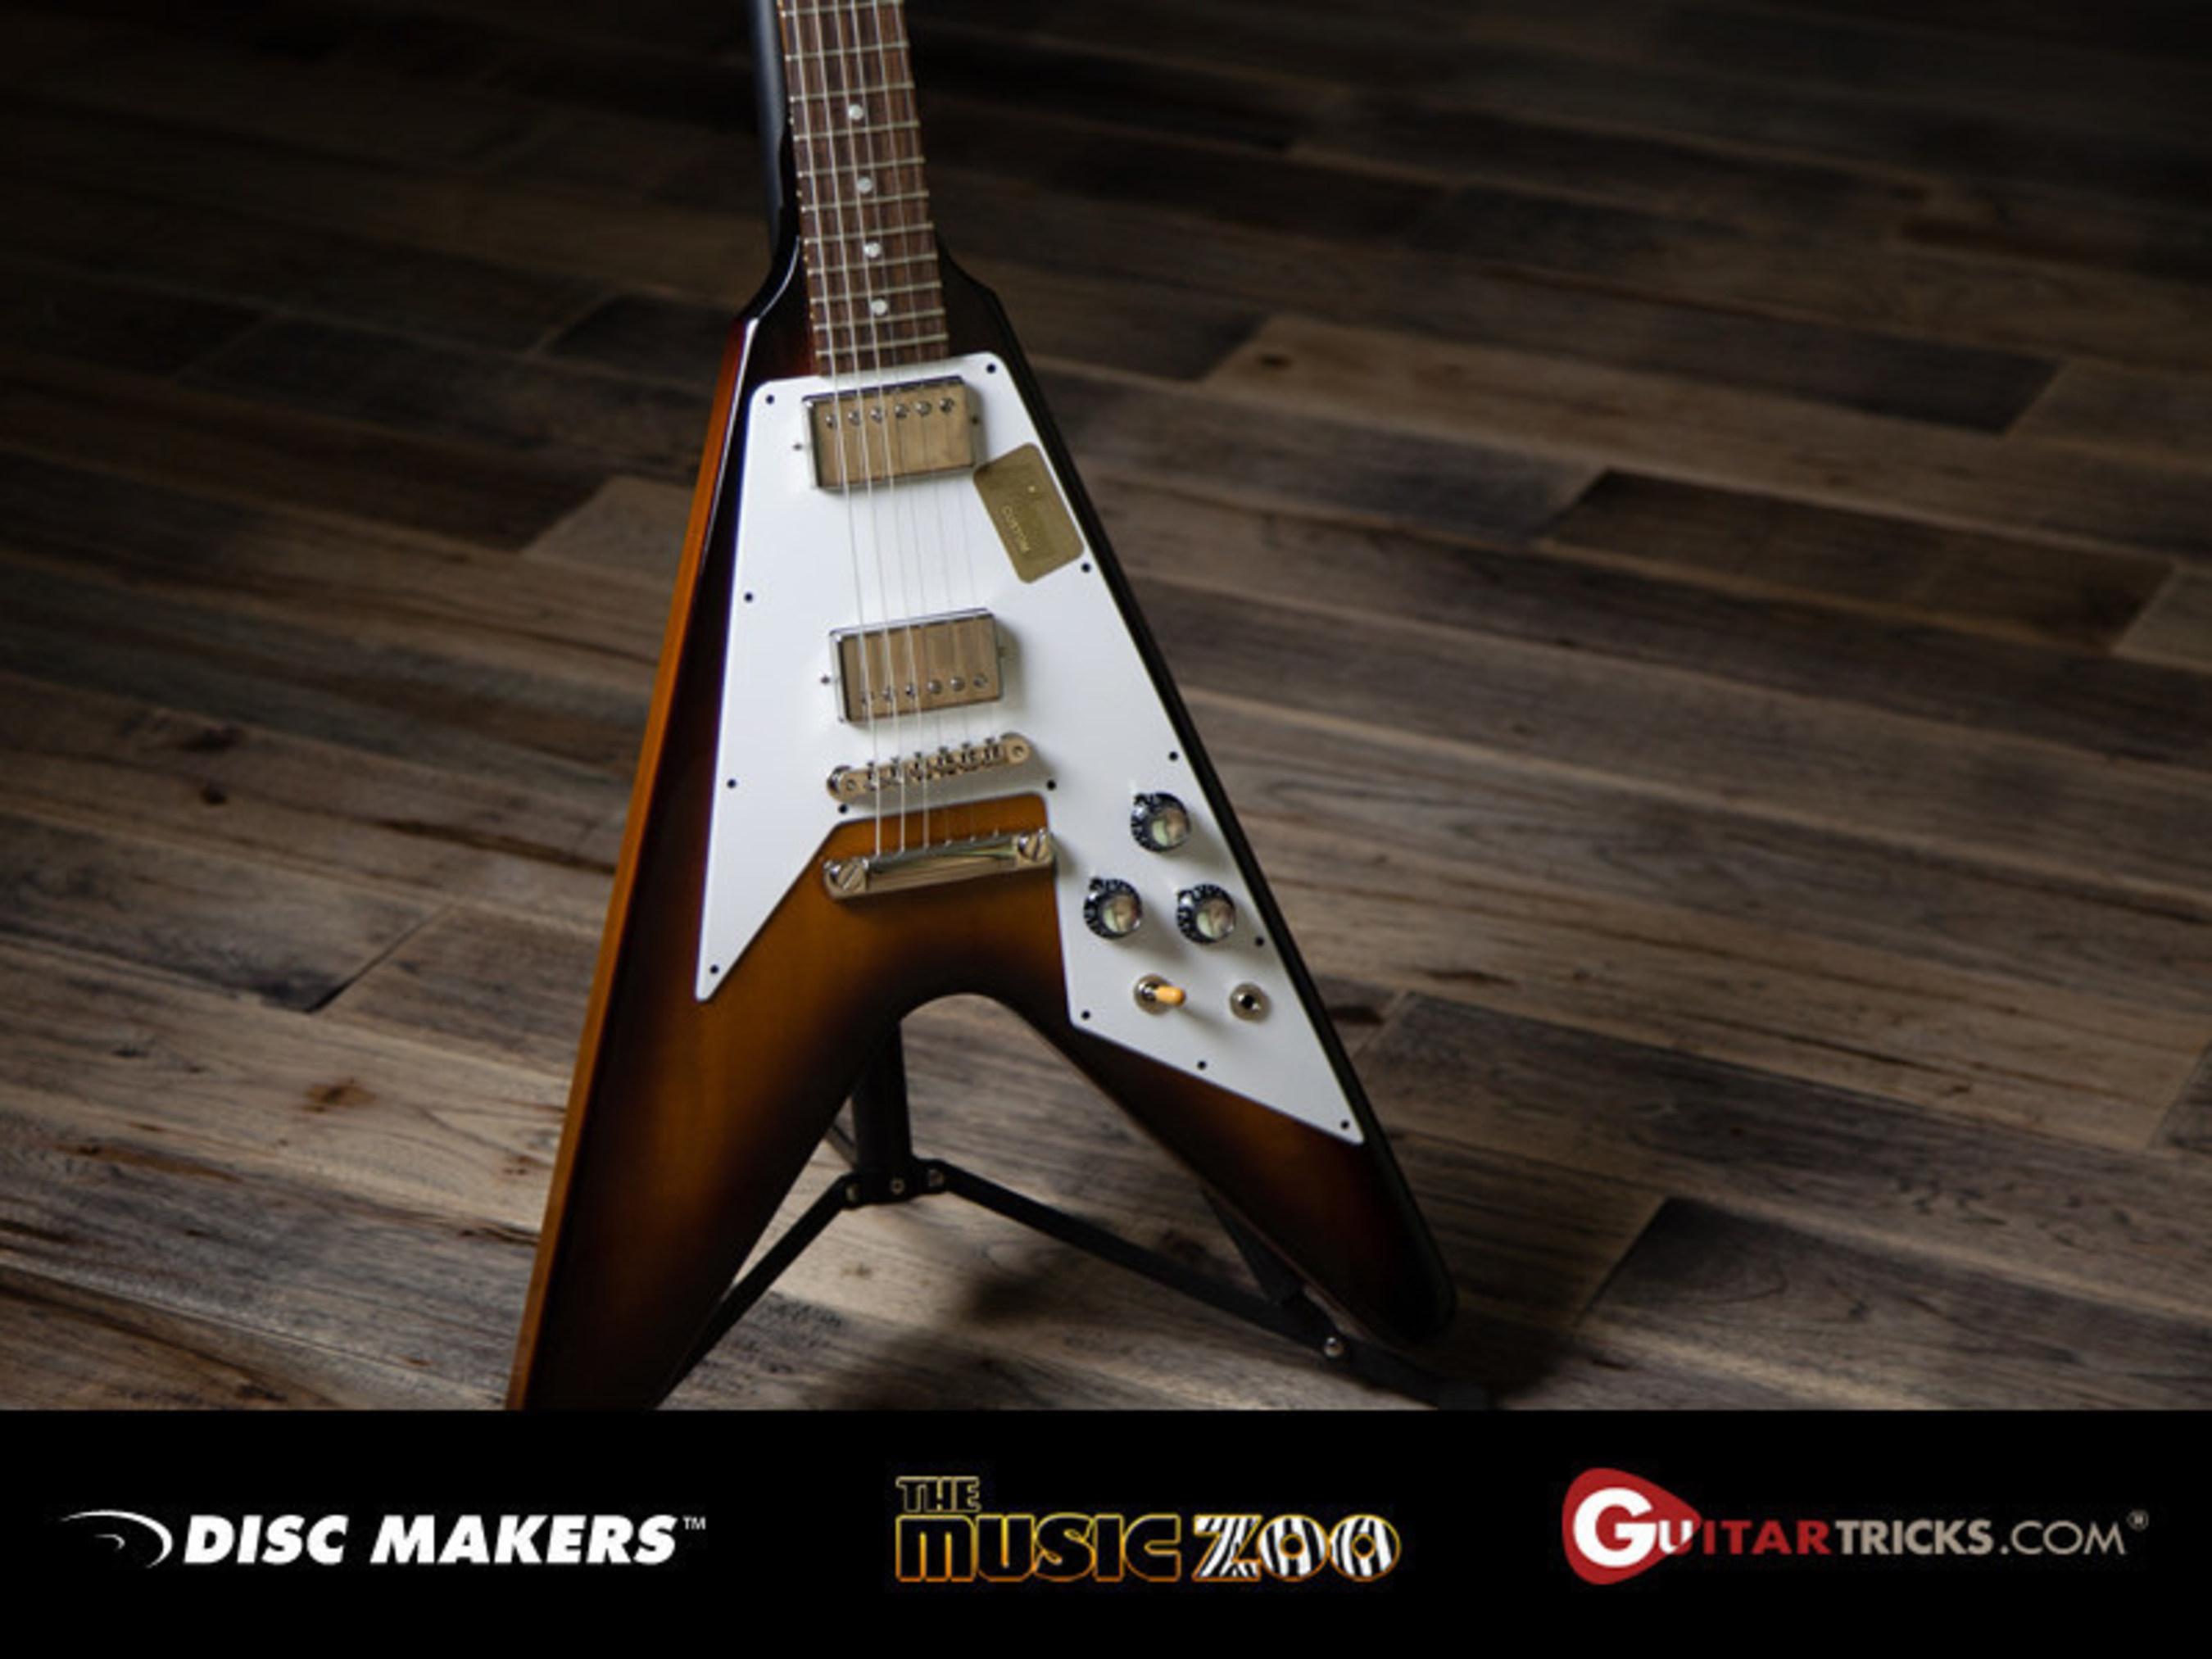 Disc Makers Partners with The Music Zoo and Guitar Tricks to Bring Guitarists the Axe to the Max Sweepstakes